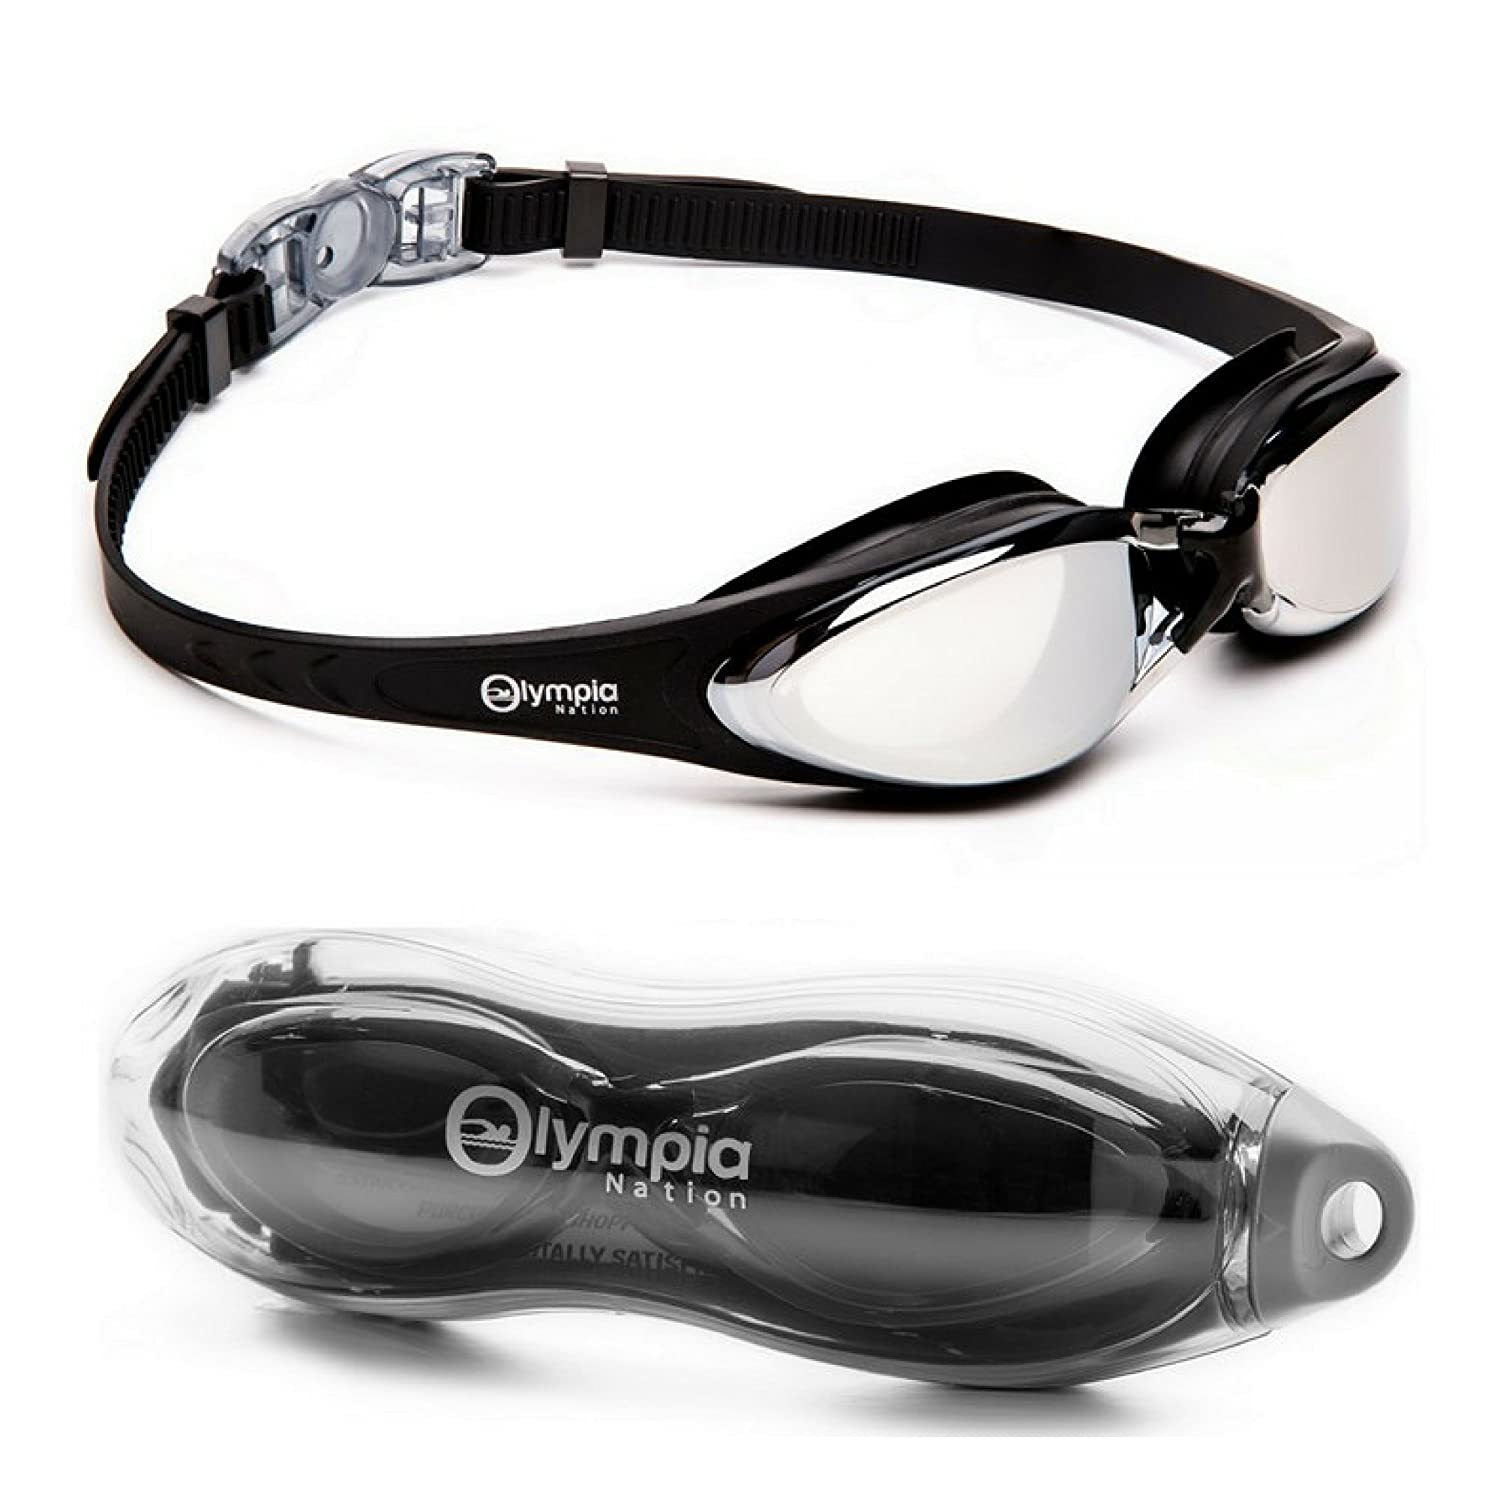 Olympia Nation Crystal Clear Comfortable Swimming Goggles with Anti-Fog Lenses, Swim Goggle for Adult Children Men Women And Kids – Swim Like A Pro